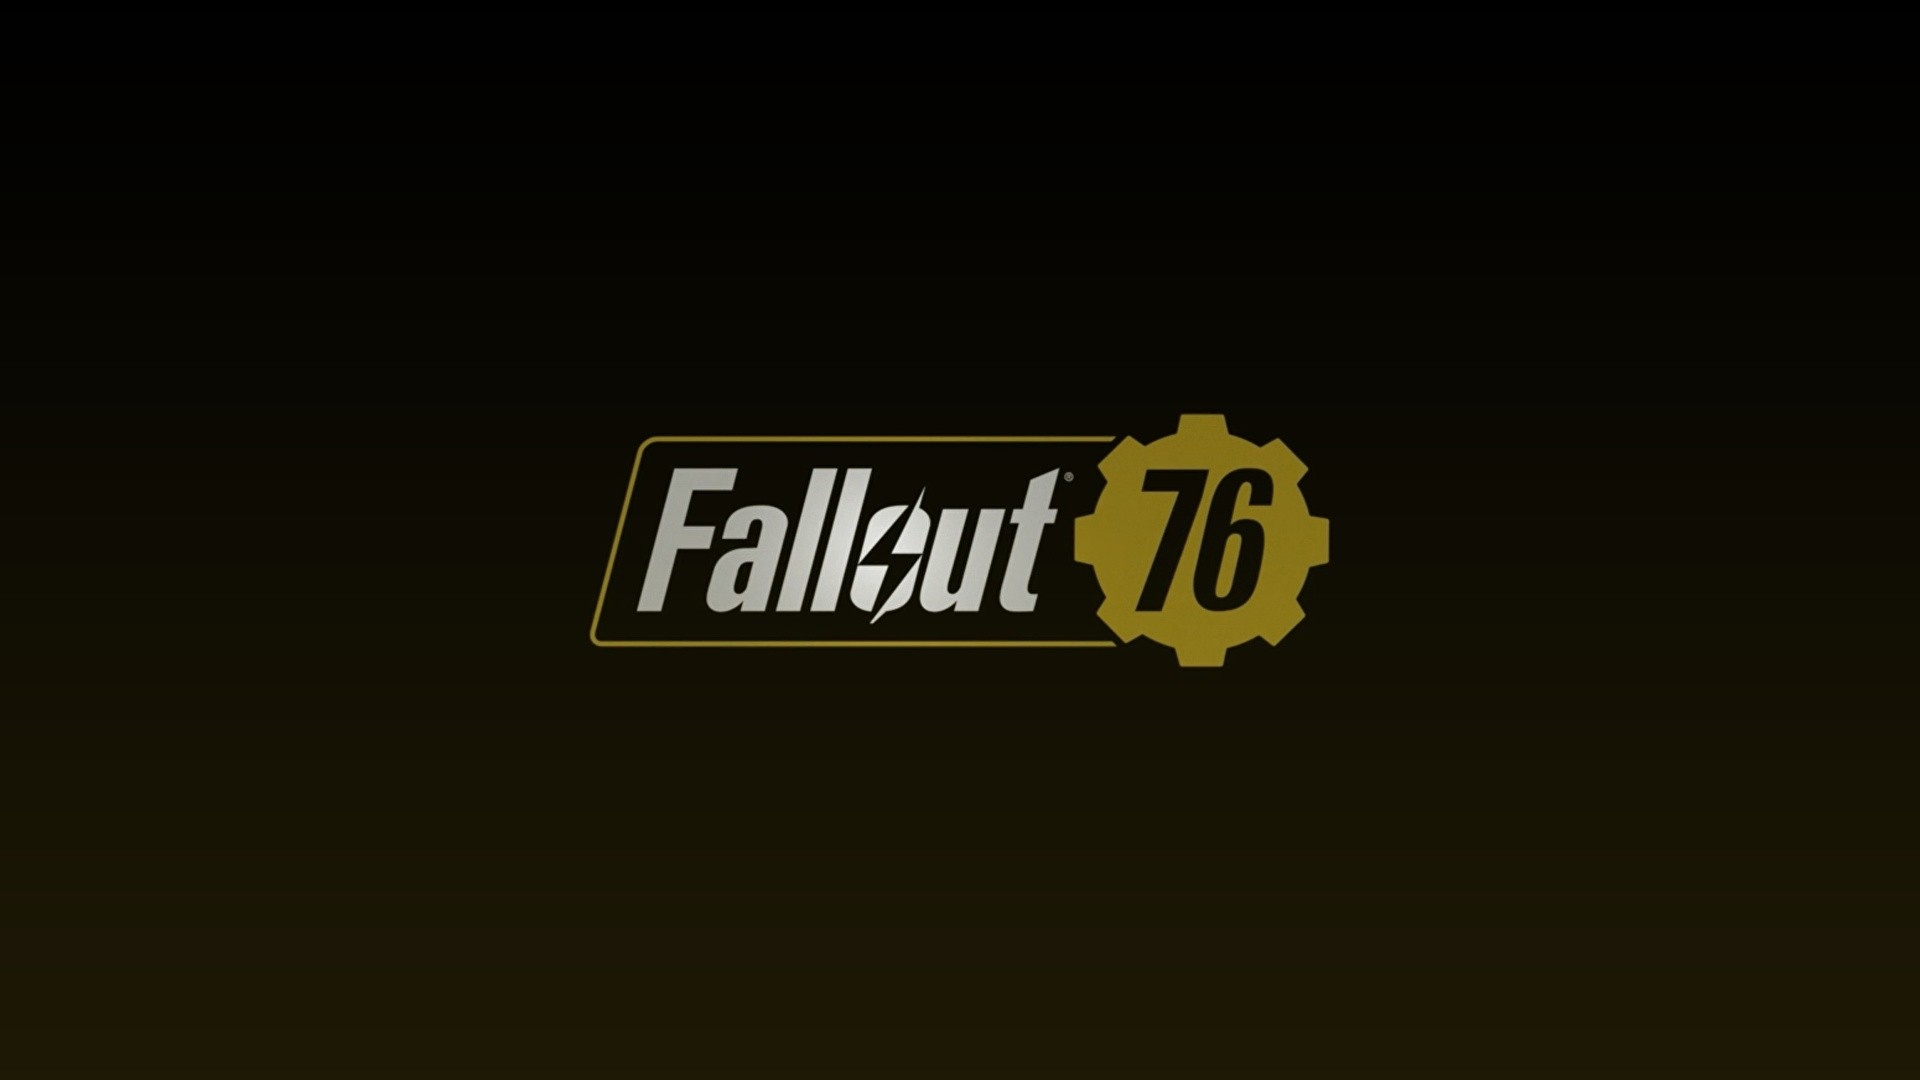 Fallout 76 Wallpaper Picture hd